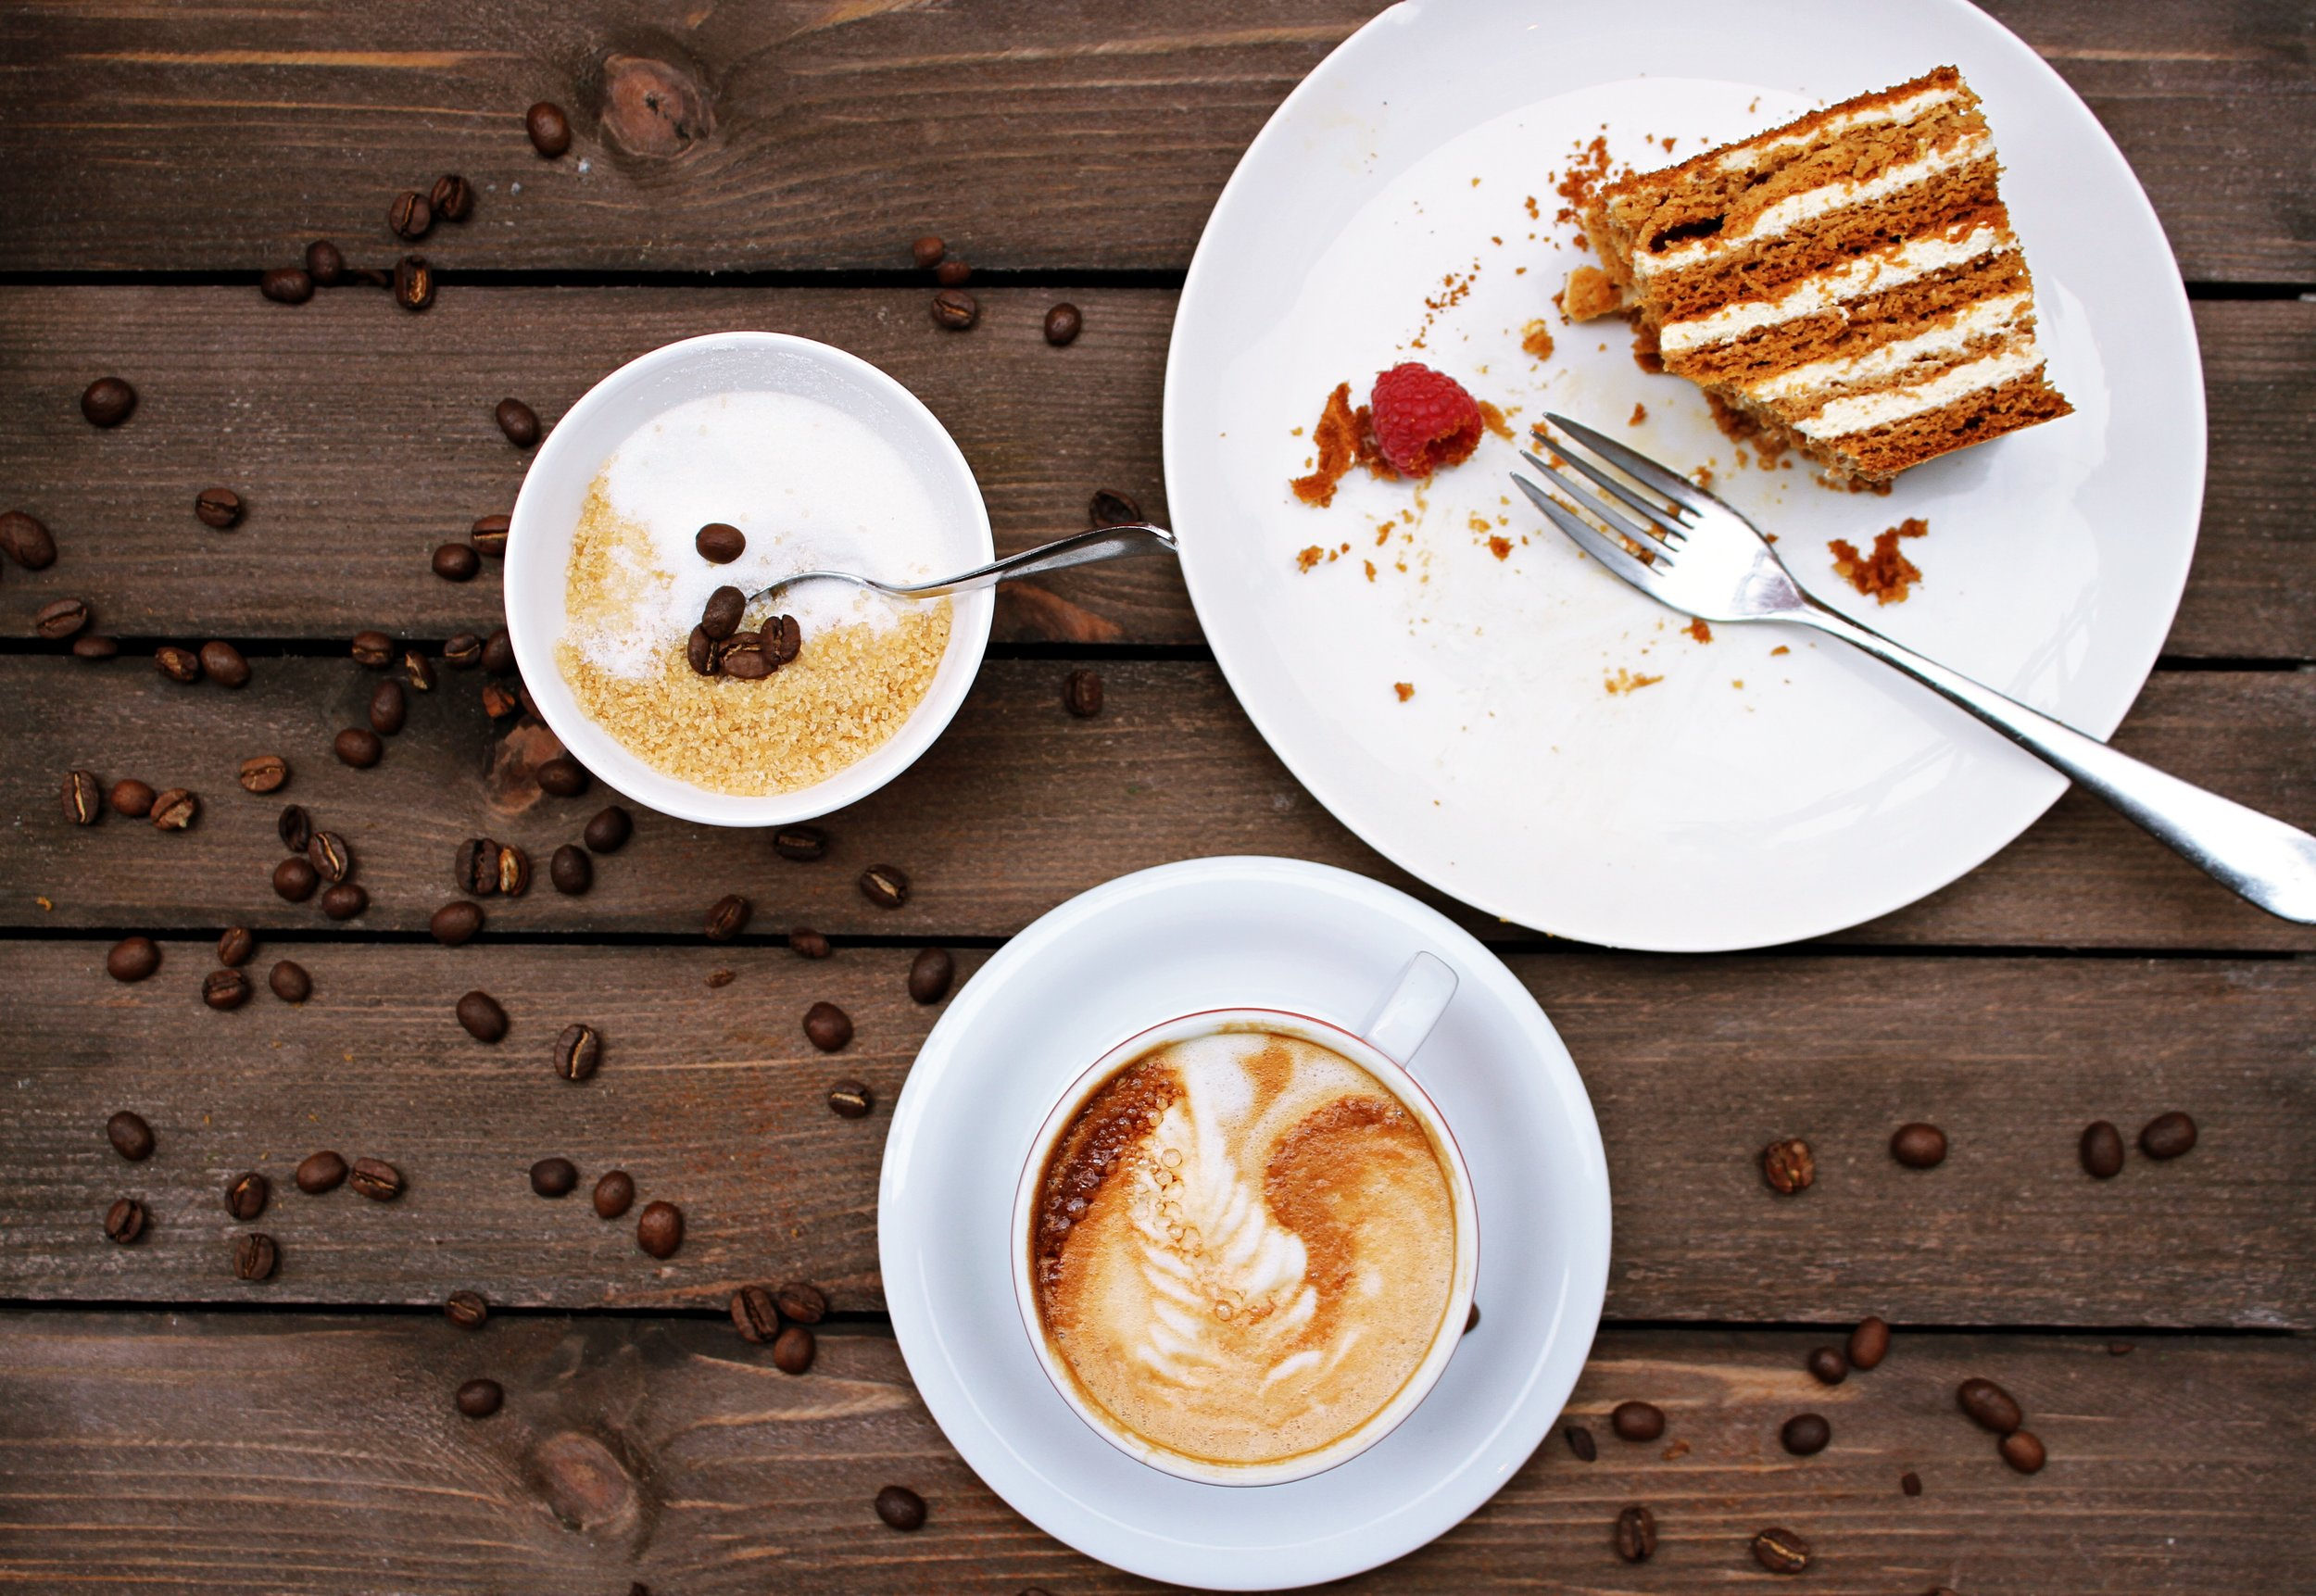 Image: half eaten cake and spoon positioned to side with sugar bowl and latte on table